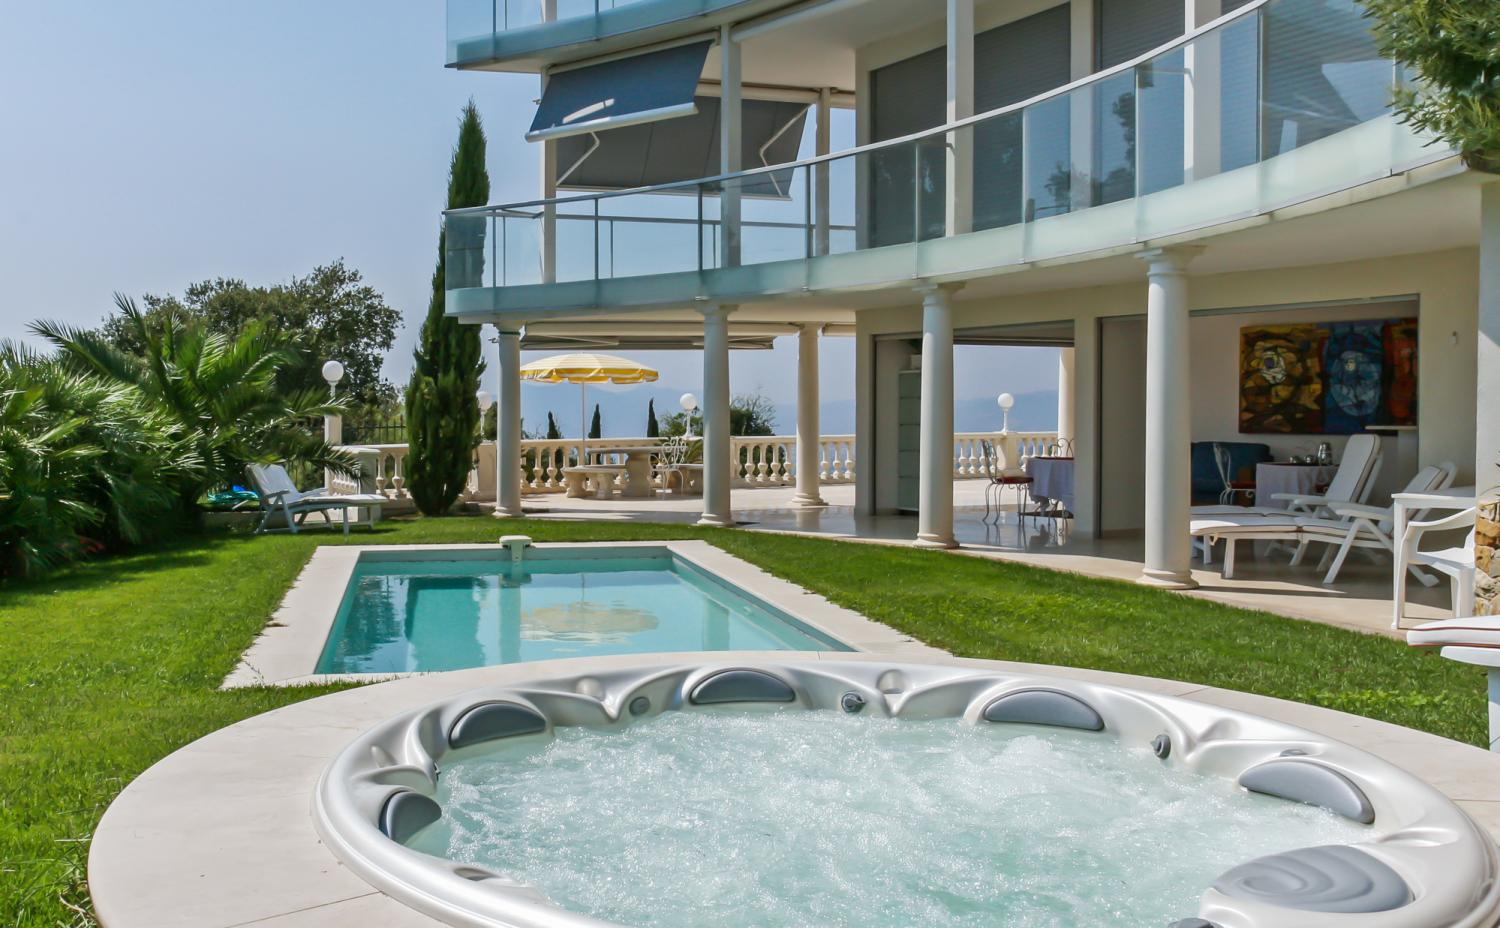 Outdor Pool Jacuzzi, La Contemporaine, Cannes, Cote d'Azur.